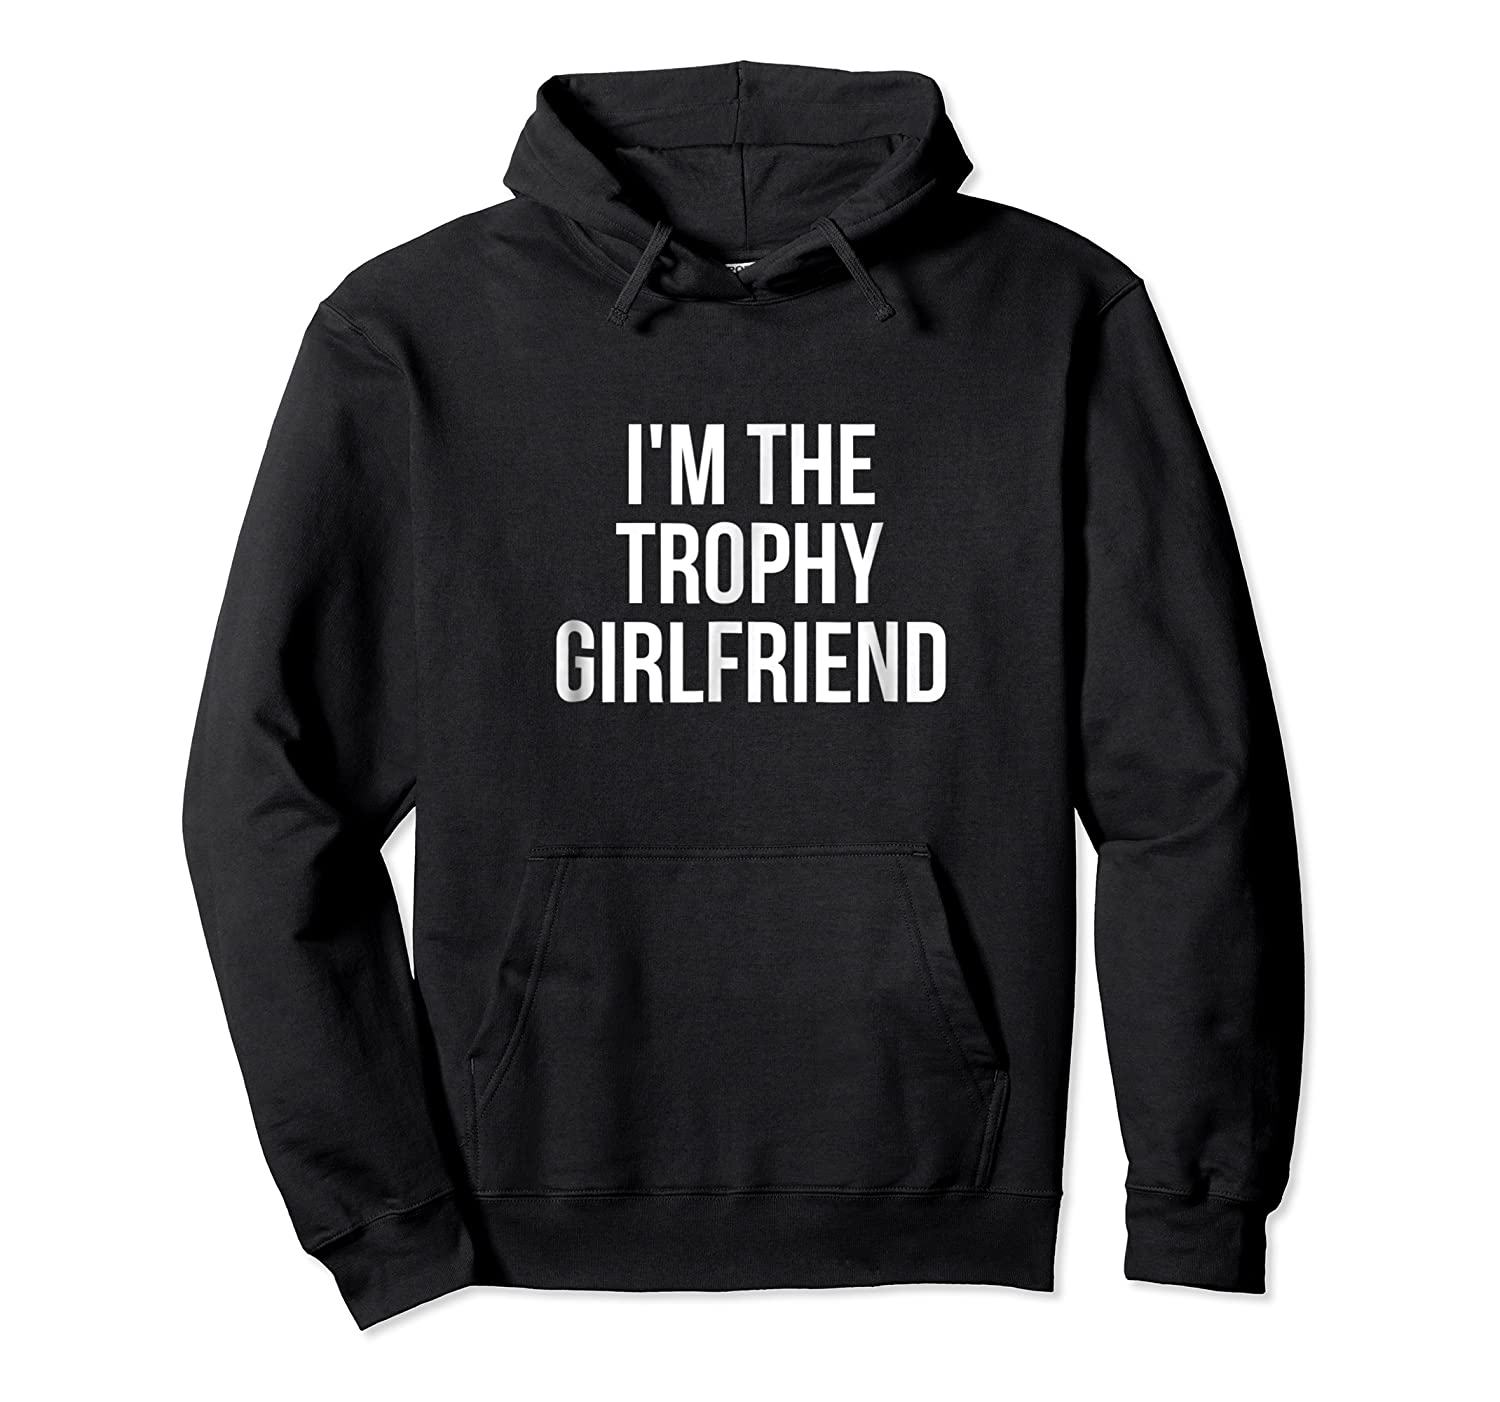 I'm The Trophy Girlfriend Couples Shirts Unisex Pullover Hoodie